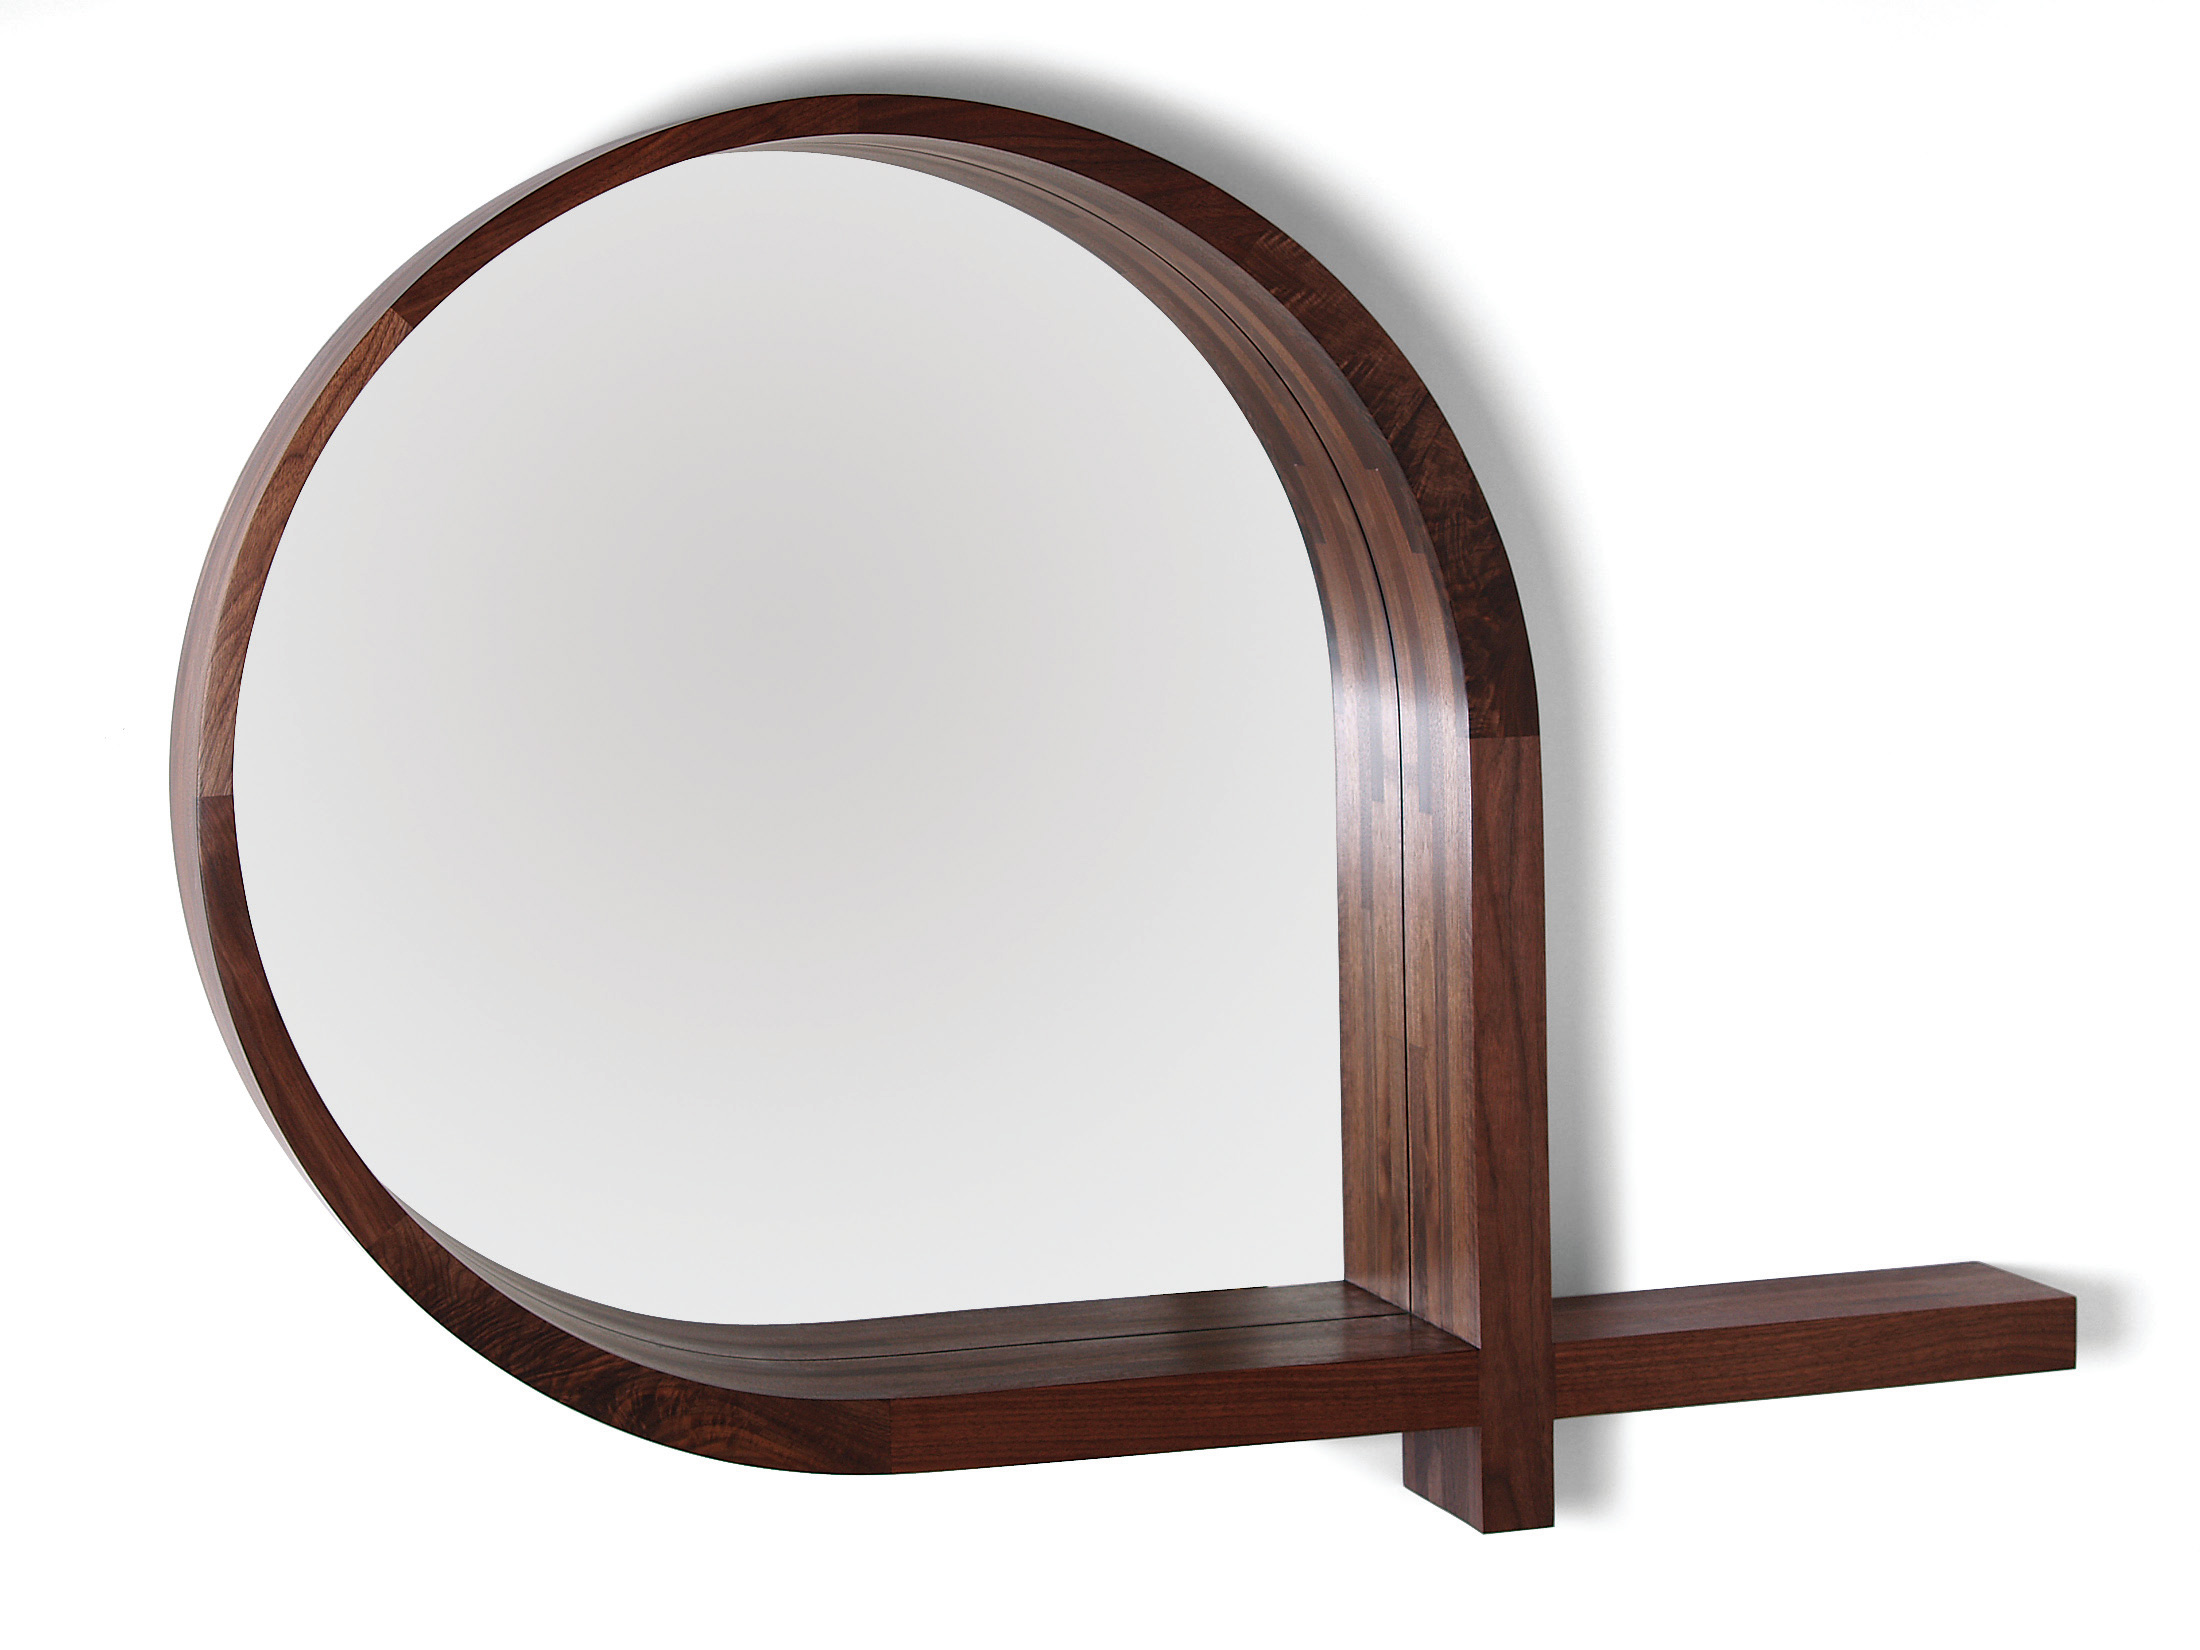 Skram Lineground Mirror Entry Shelf